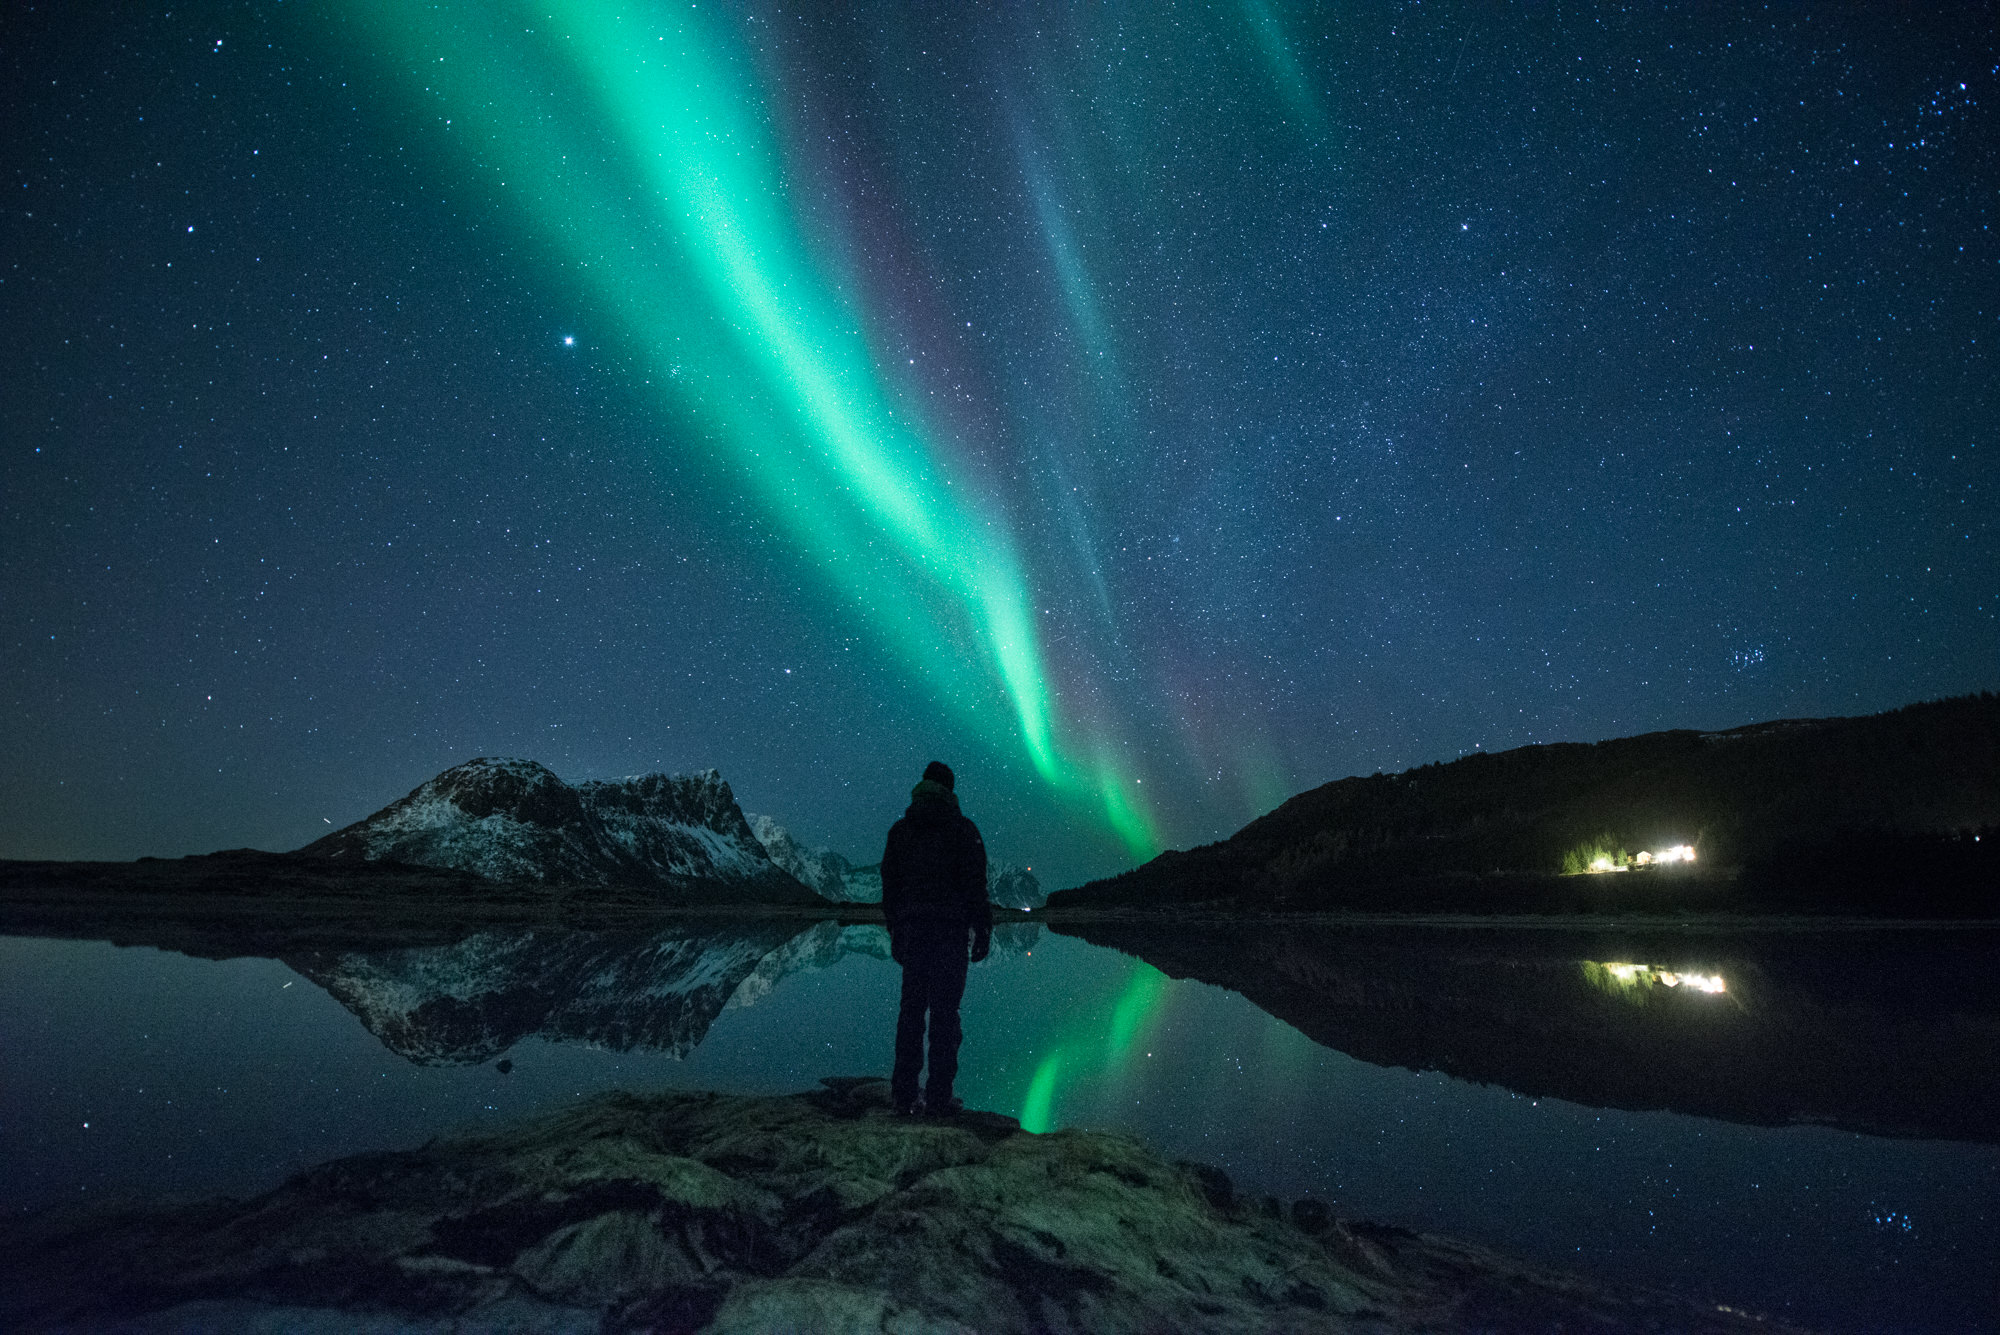 A man watches the northern lights over a lake